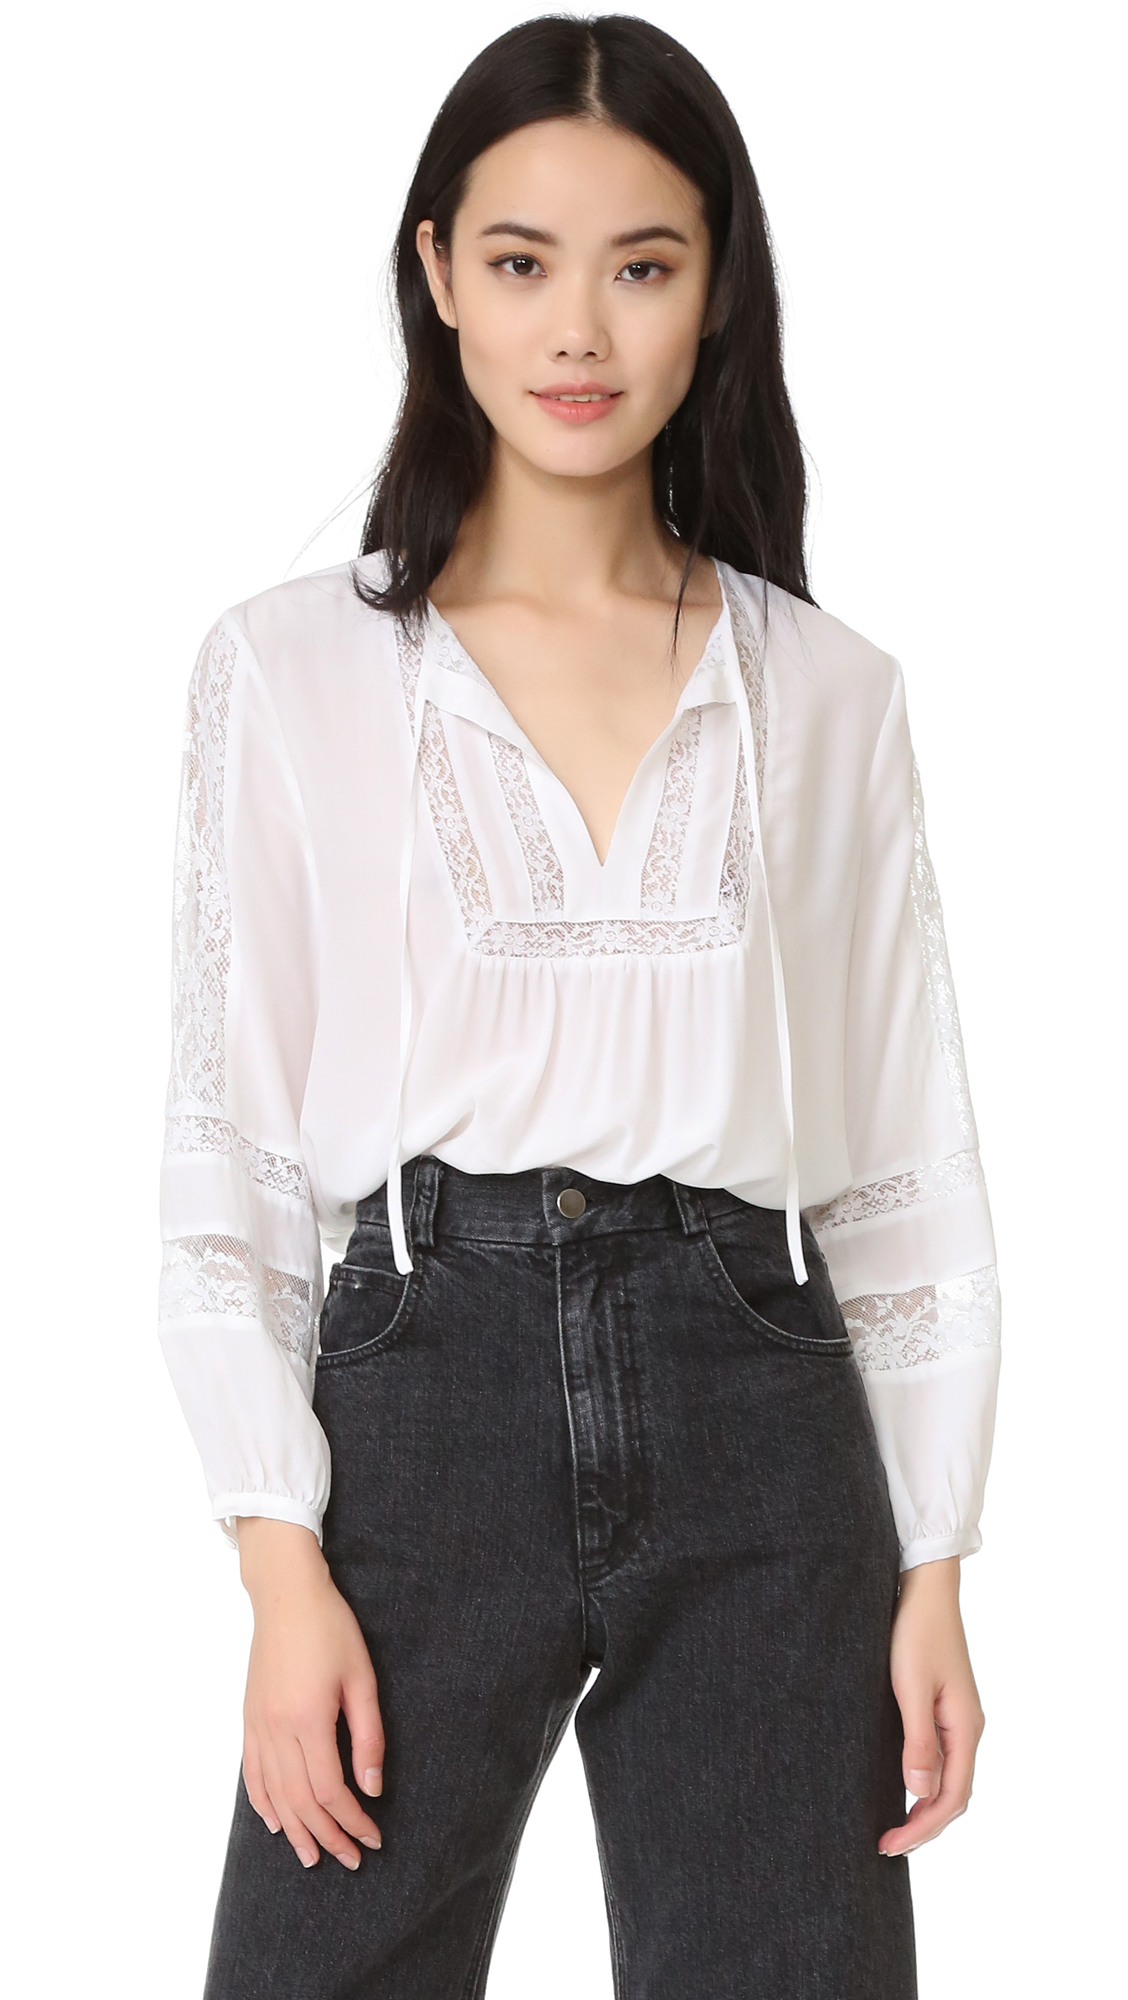 Joie Durango Blouse - Porcelain at Shopbop